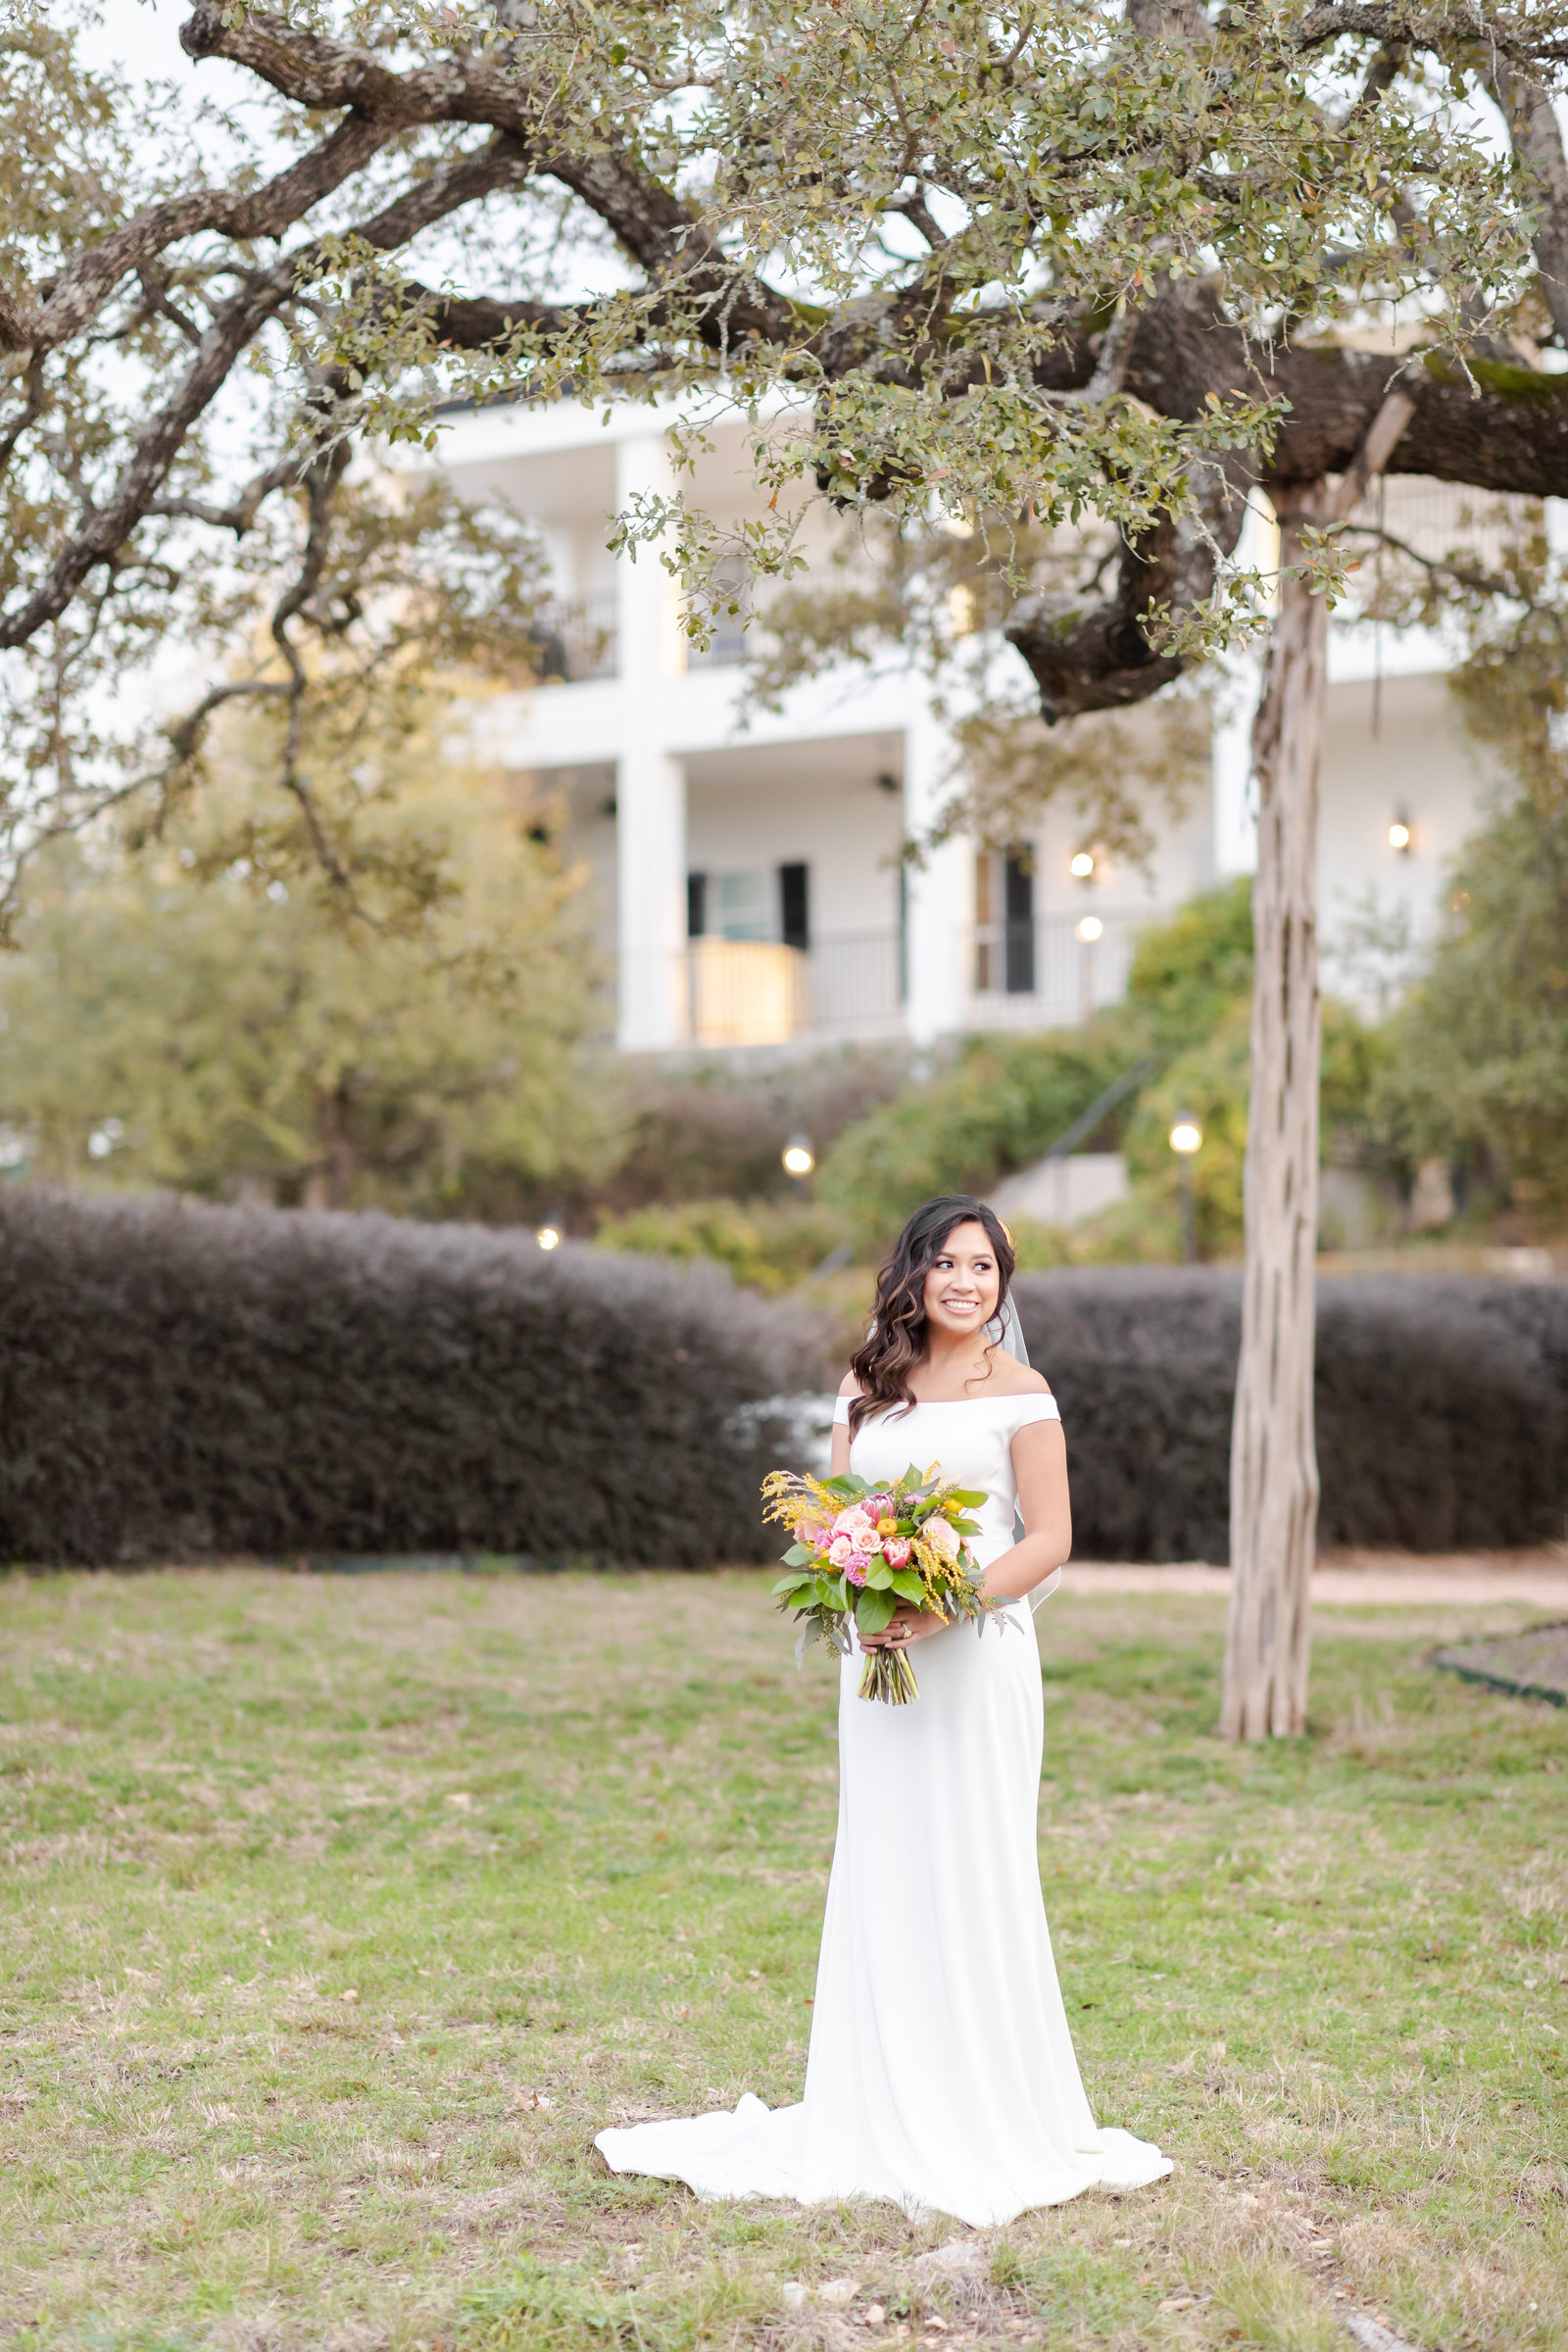 outdoor bridal portraits at Kendall Plantation in Boerne, TX